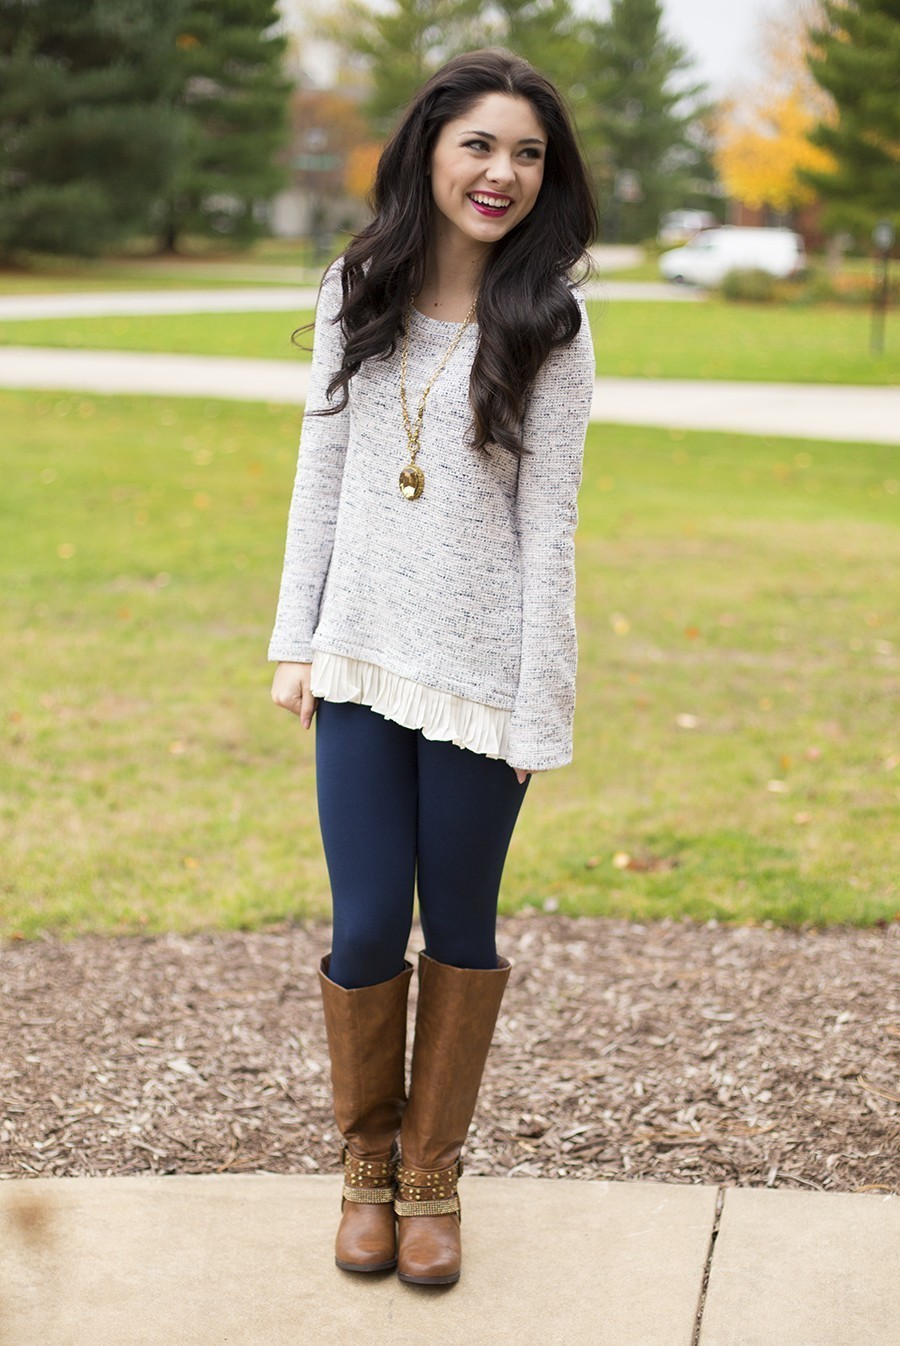 Women's Beige Oversized Sweater, Navy Leggings, Brown Leather Knee ...